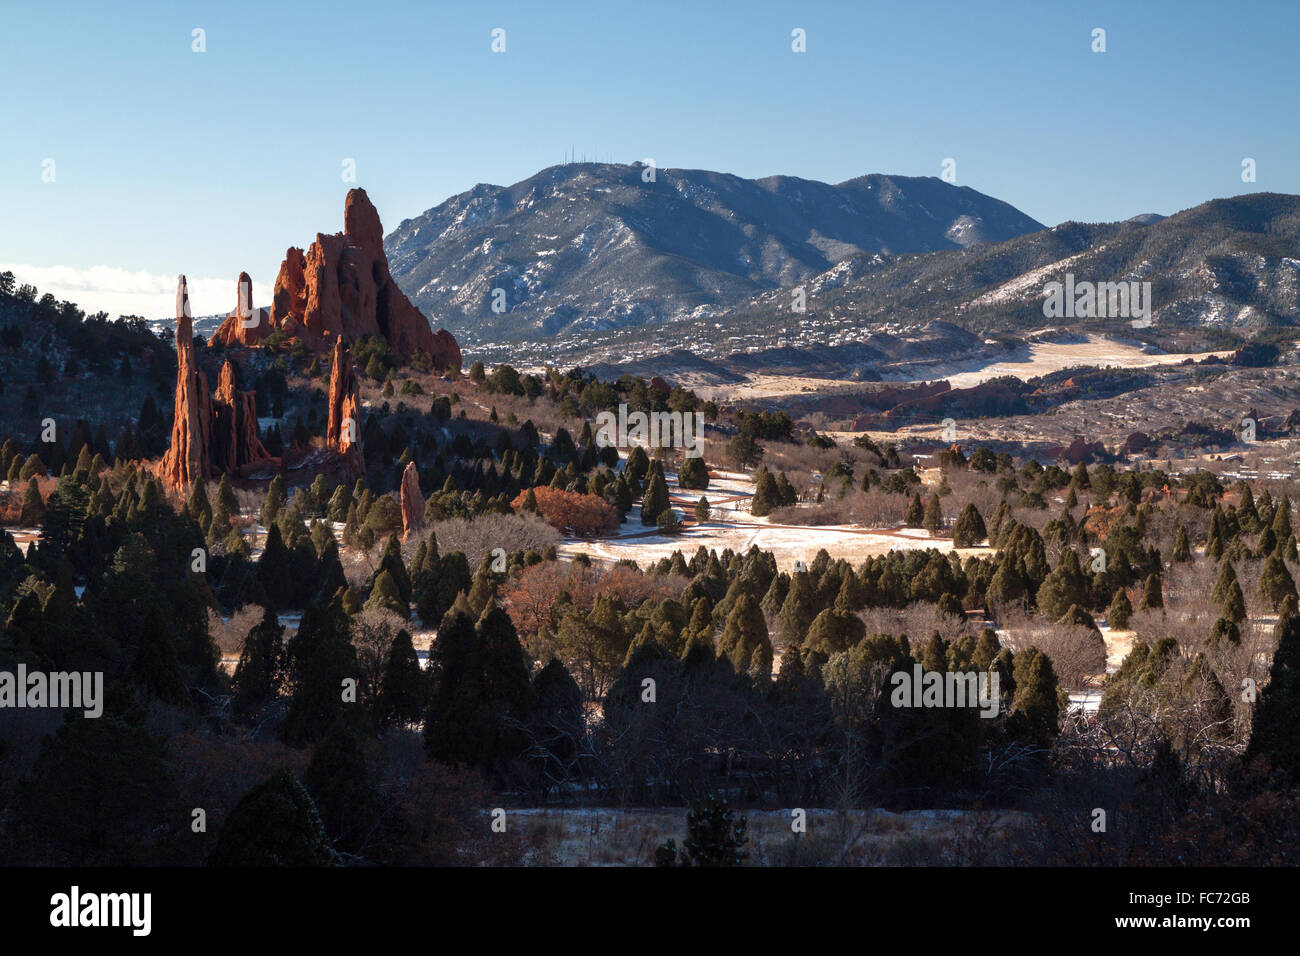 The Three Graces, Cathedral Spires, and Sleeping Giant in Garden of the Gods Park, Colorado Springs, Colorado, in - Stock Image